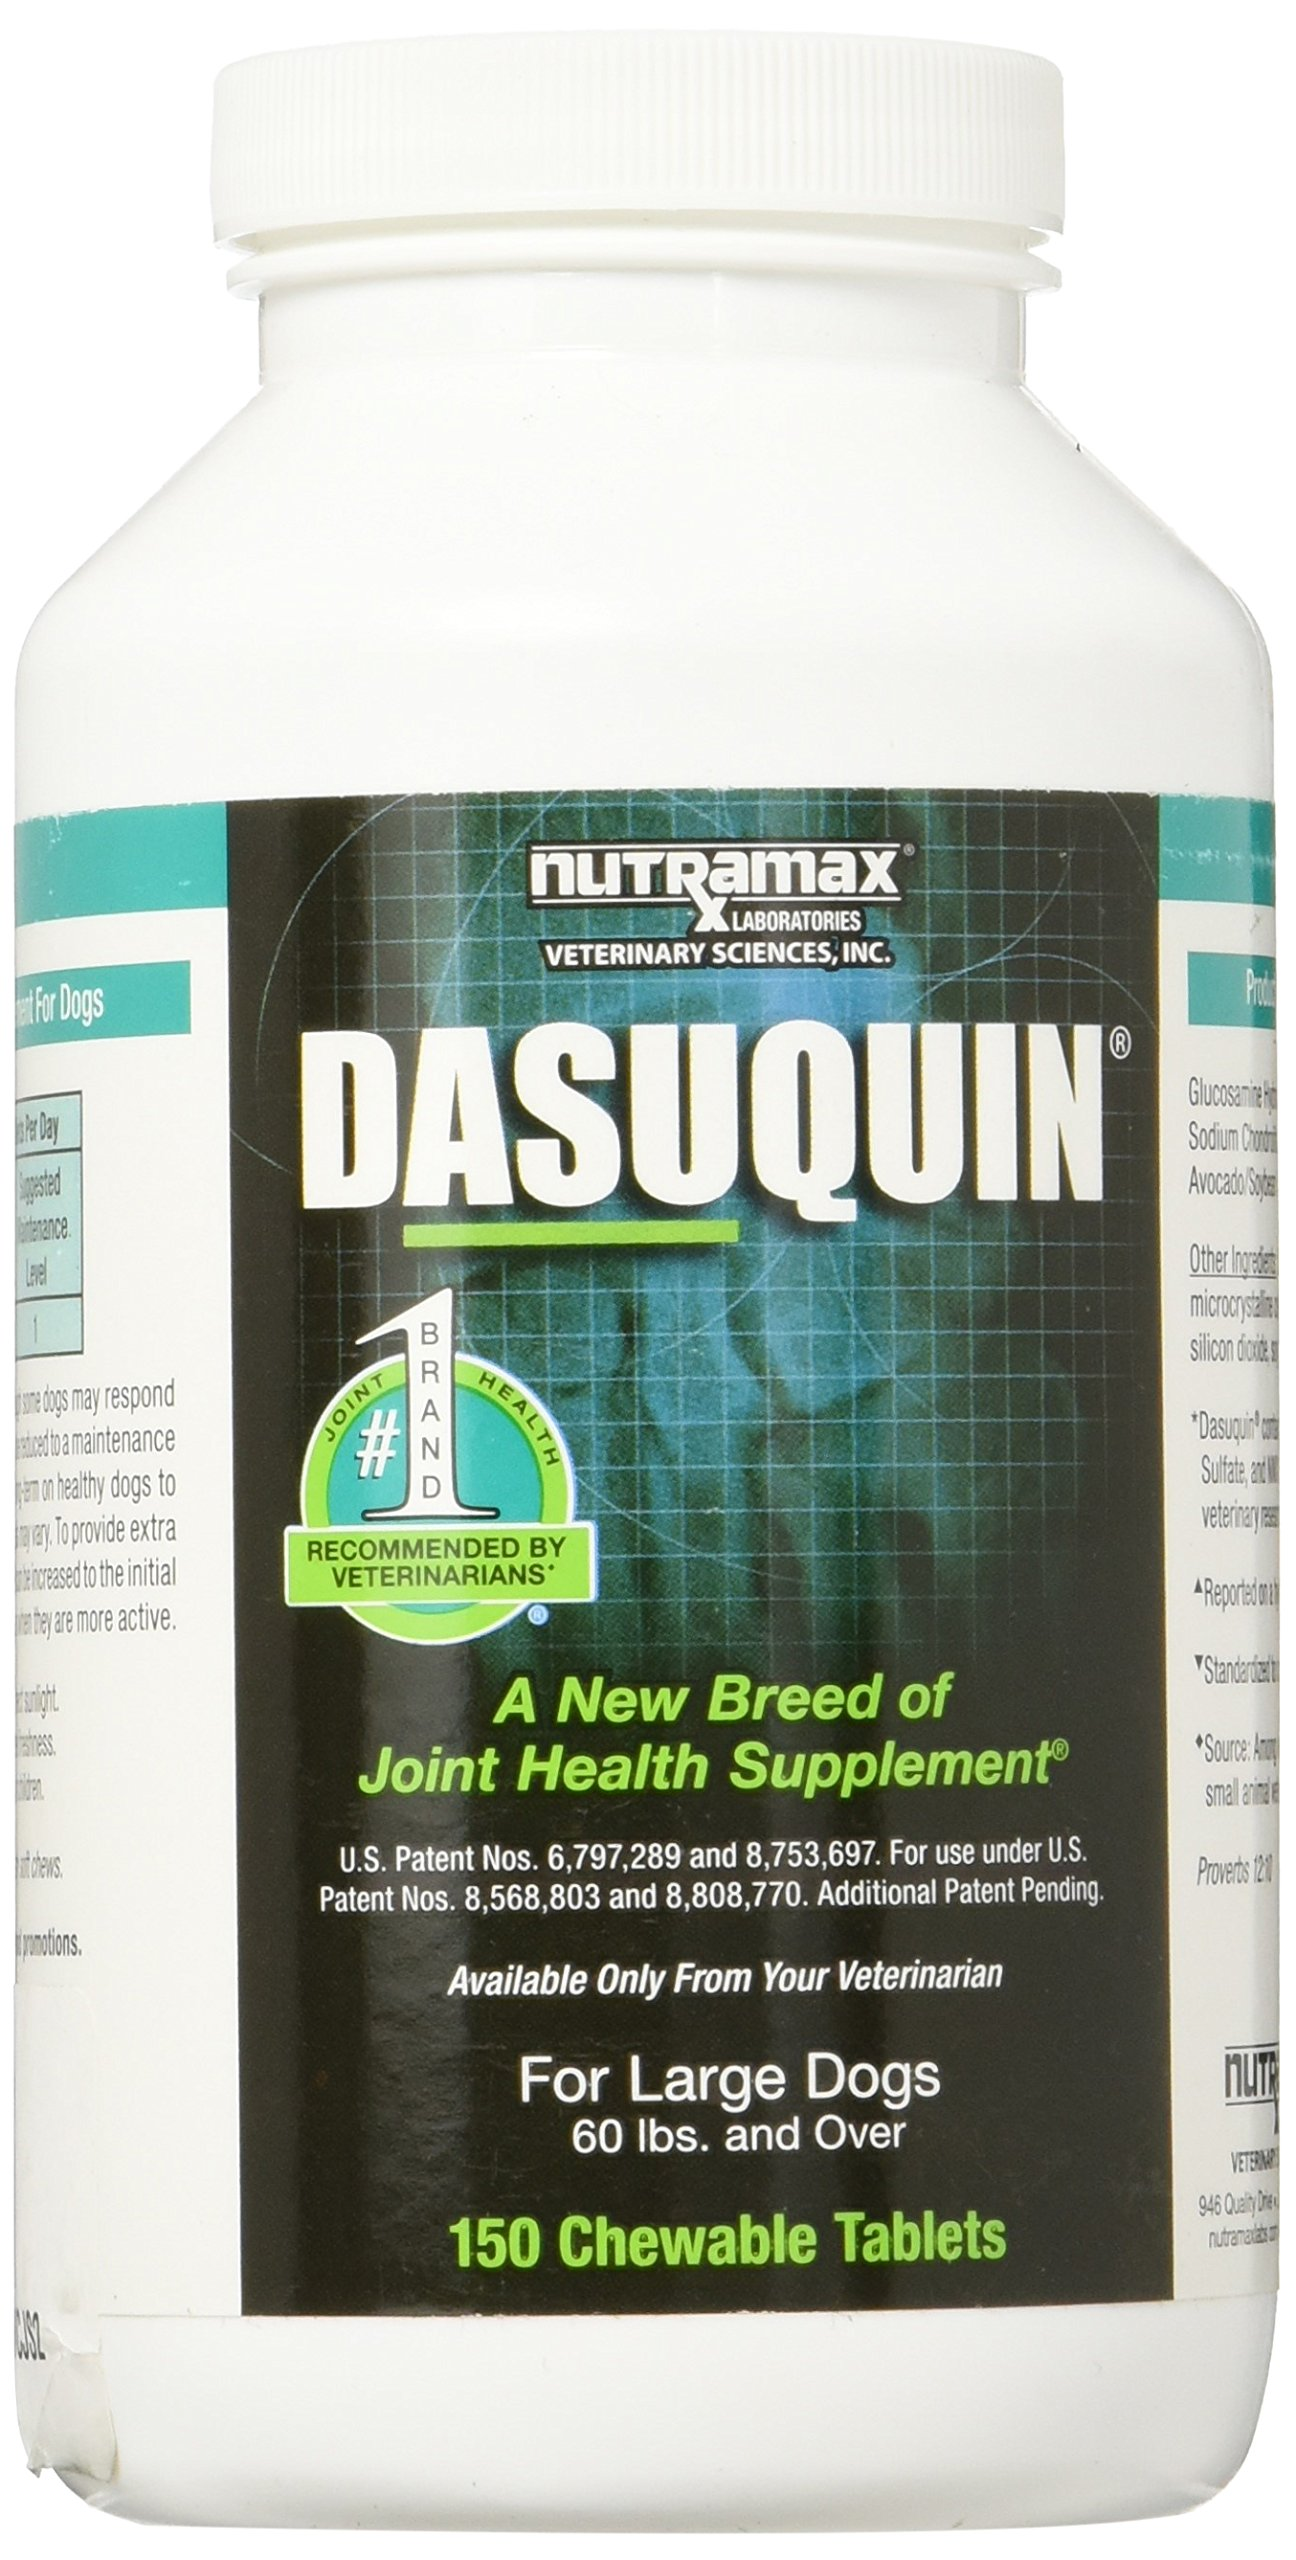 Dasuquin Chewable Tablets for Large Dogs 150ct